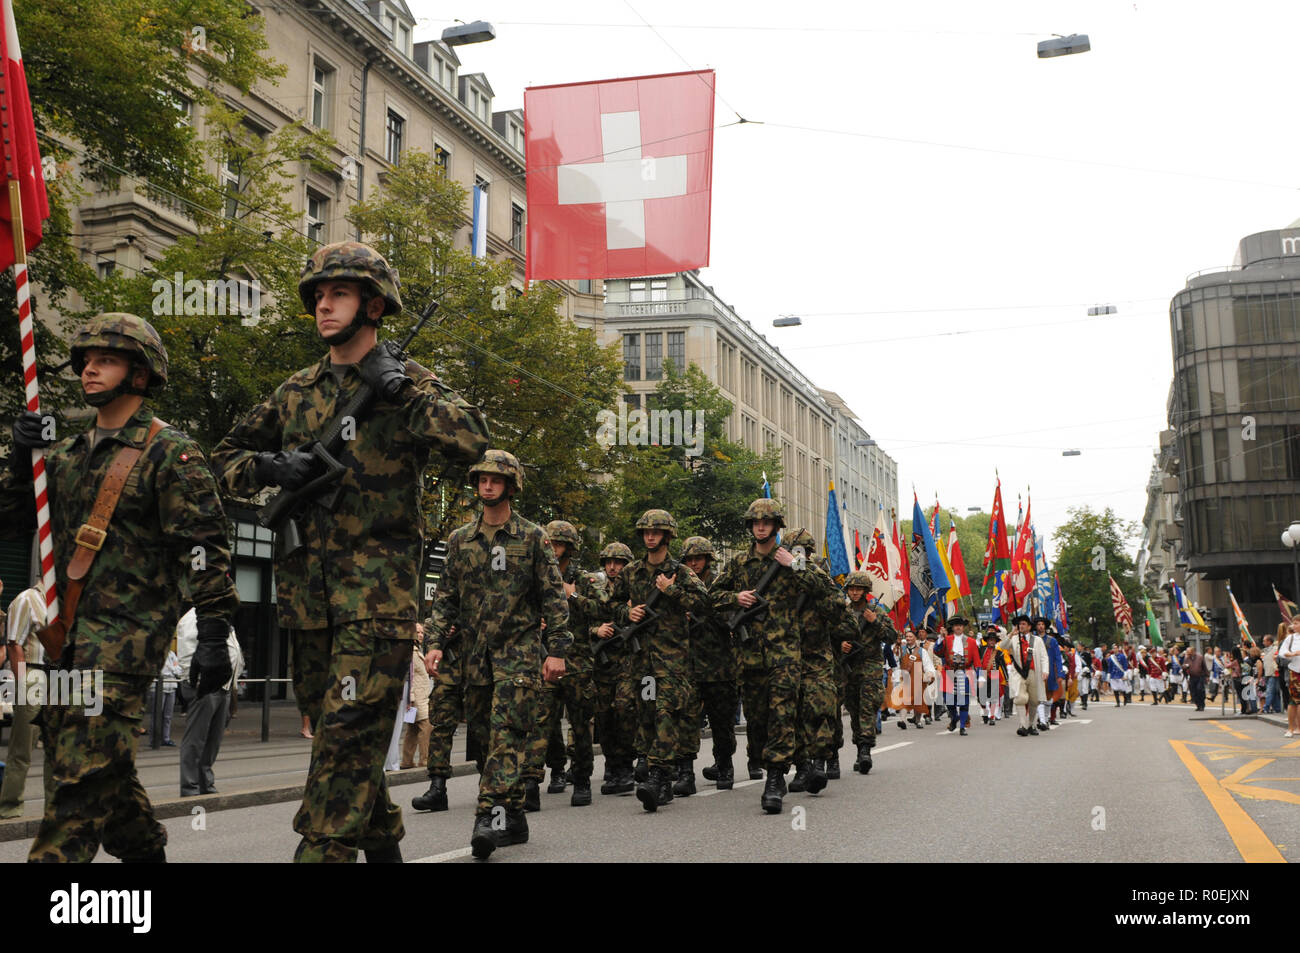 Swiss soldier parade at the Swiss National Day Parade in Zürich-City - Stock Image